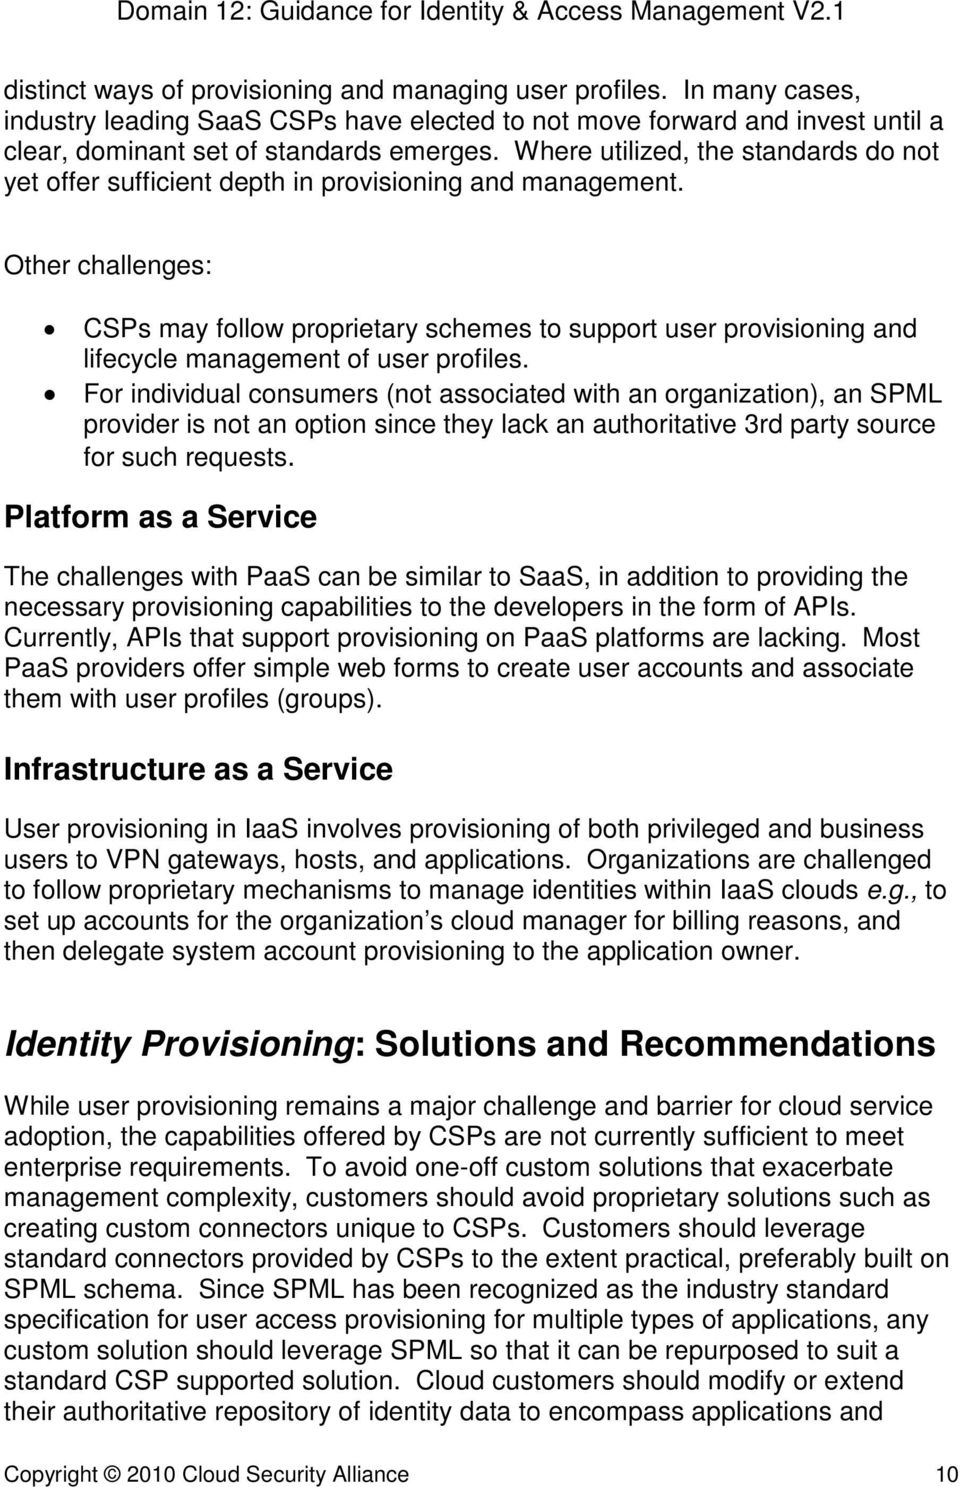 Other challenges: CSPs may follow proprietary schemes to support user provisioning and lifecycle management of user profiles.